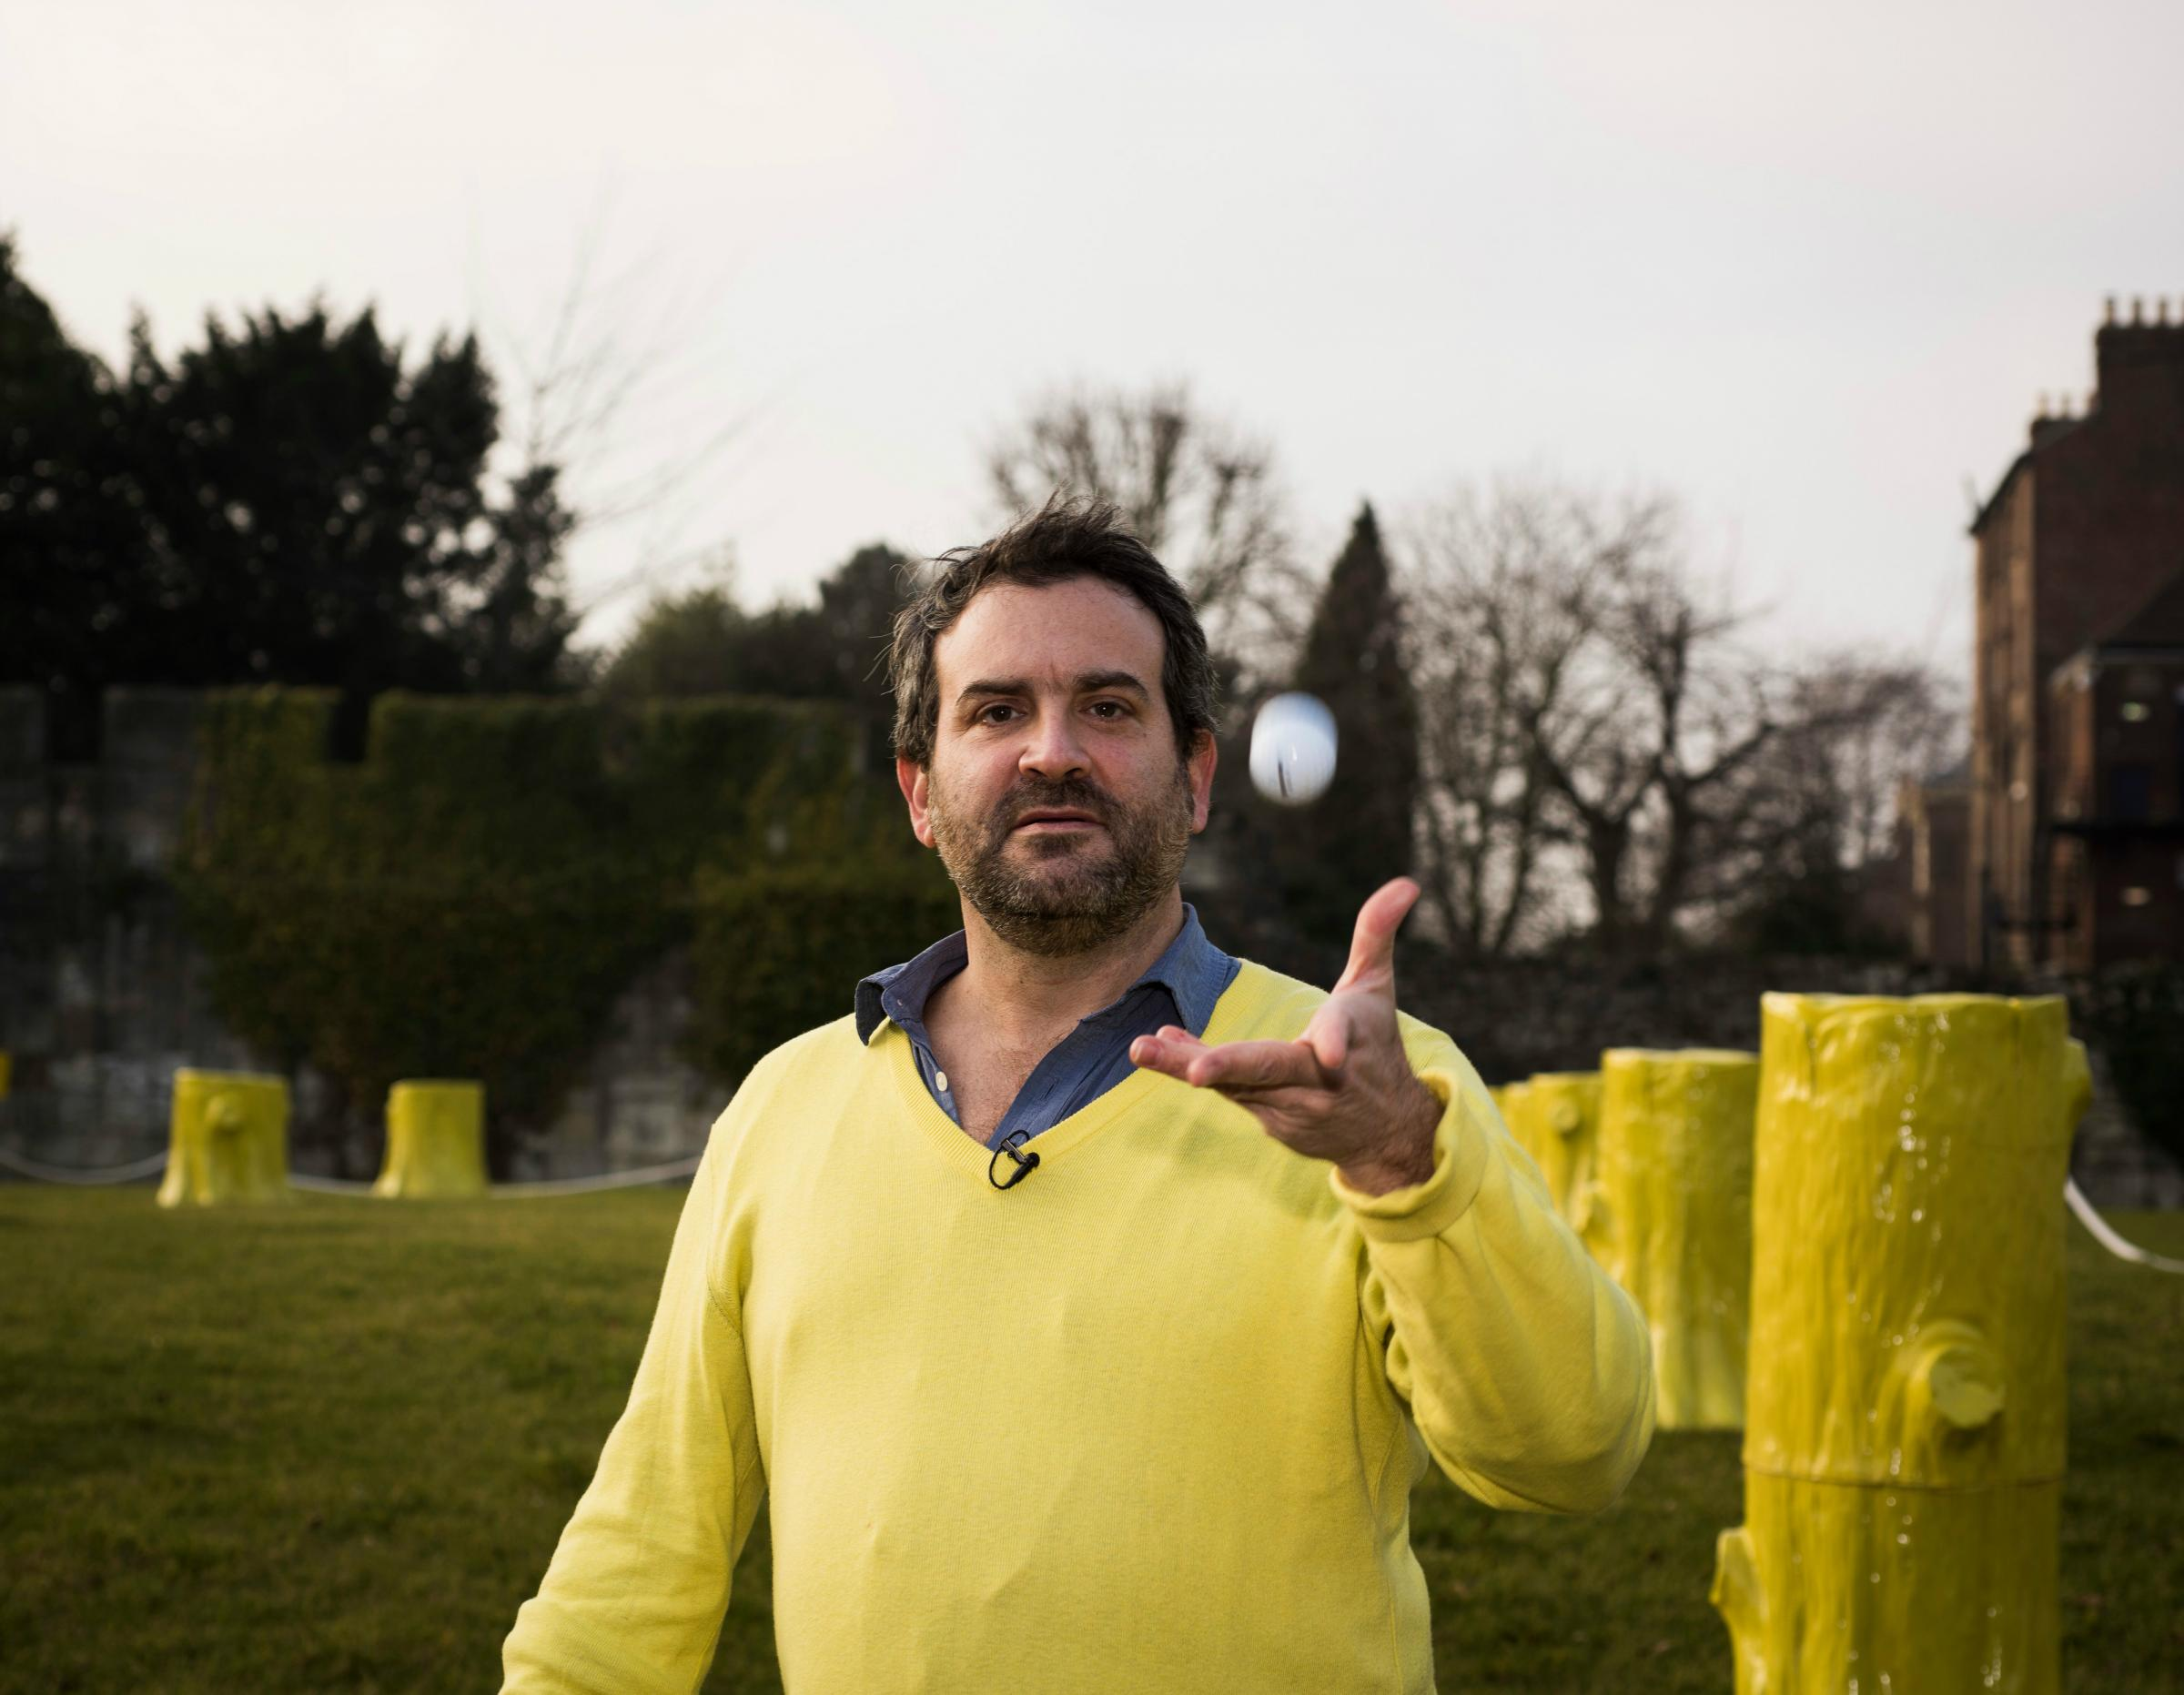 Doug Fishbone launching crowd-funding campaign for Leisure Land Golf mini golf course in York Art Gallery's Artists Garden